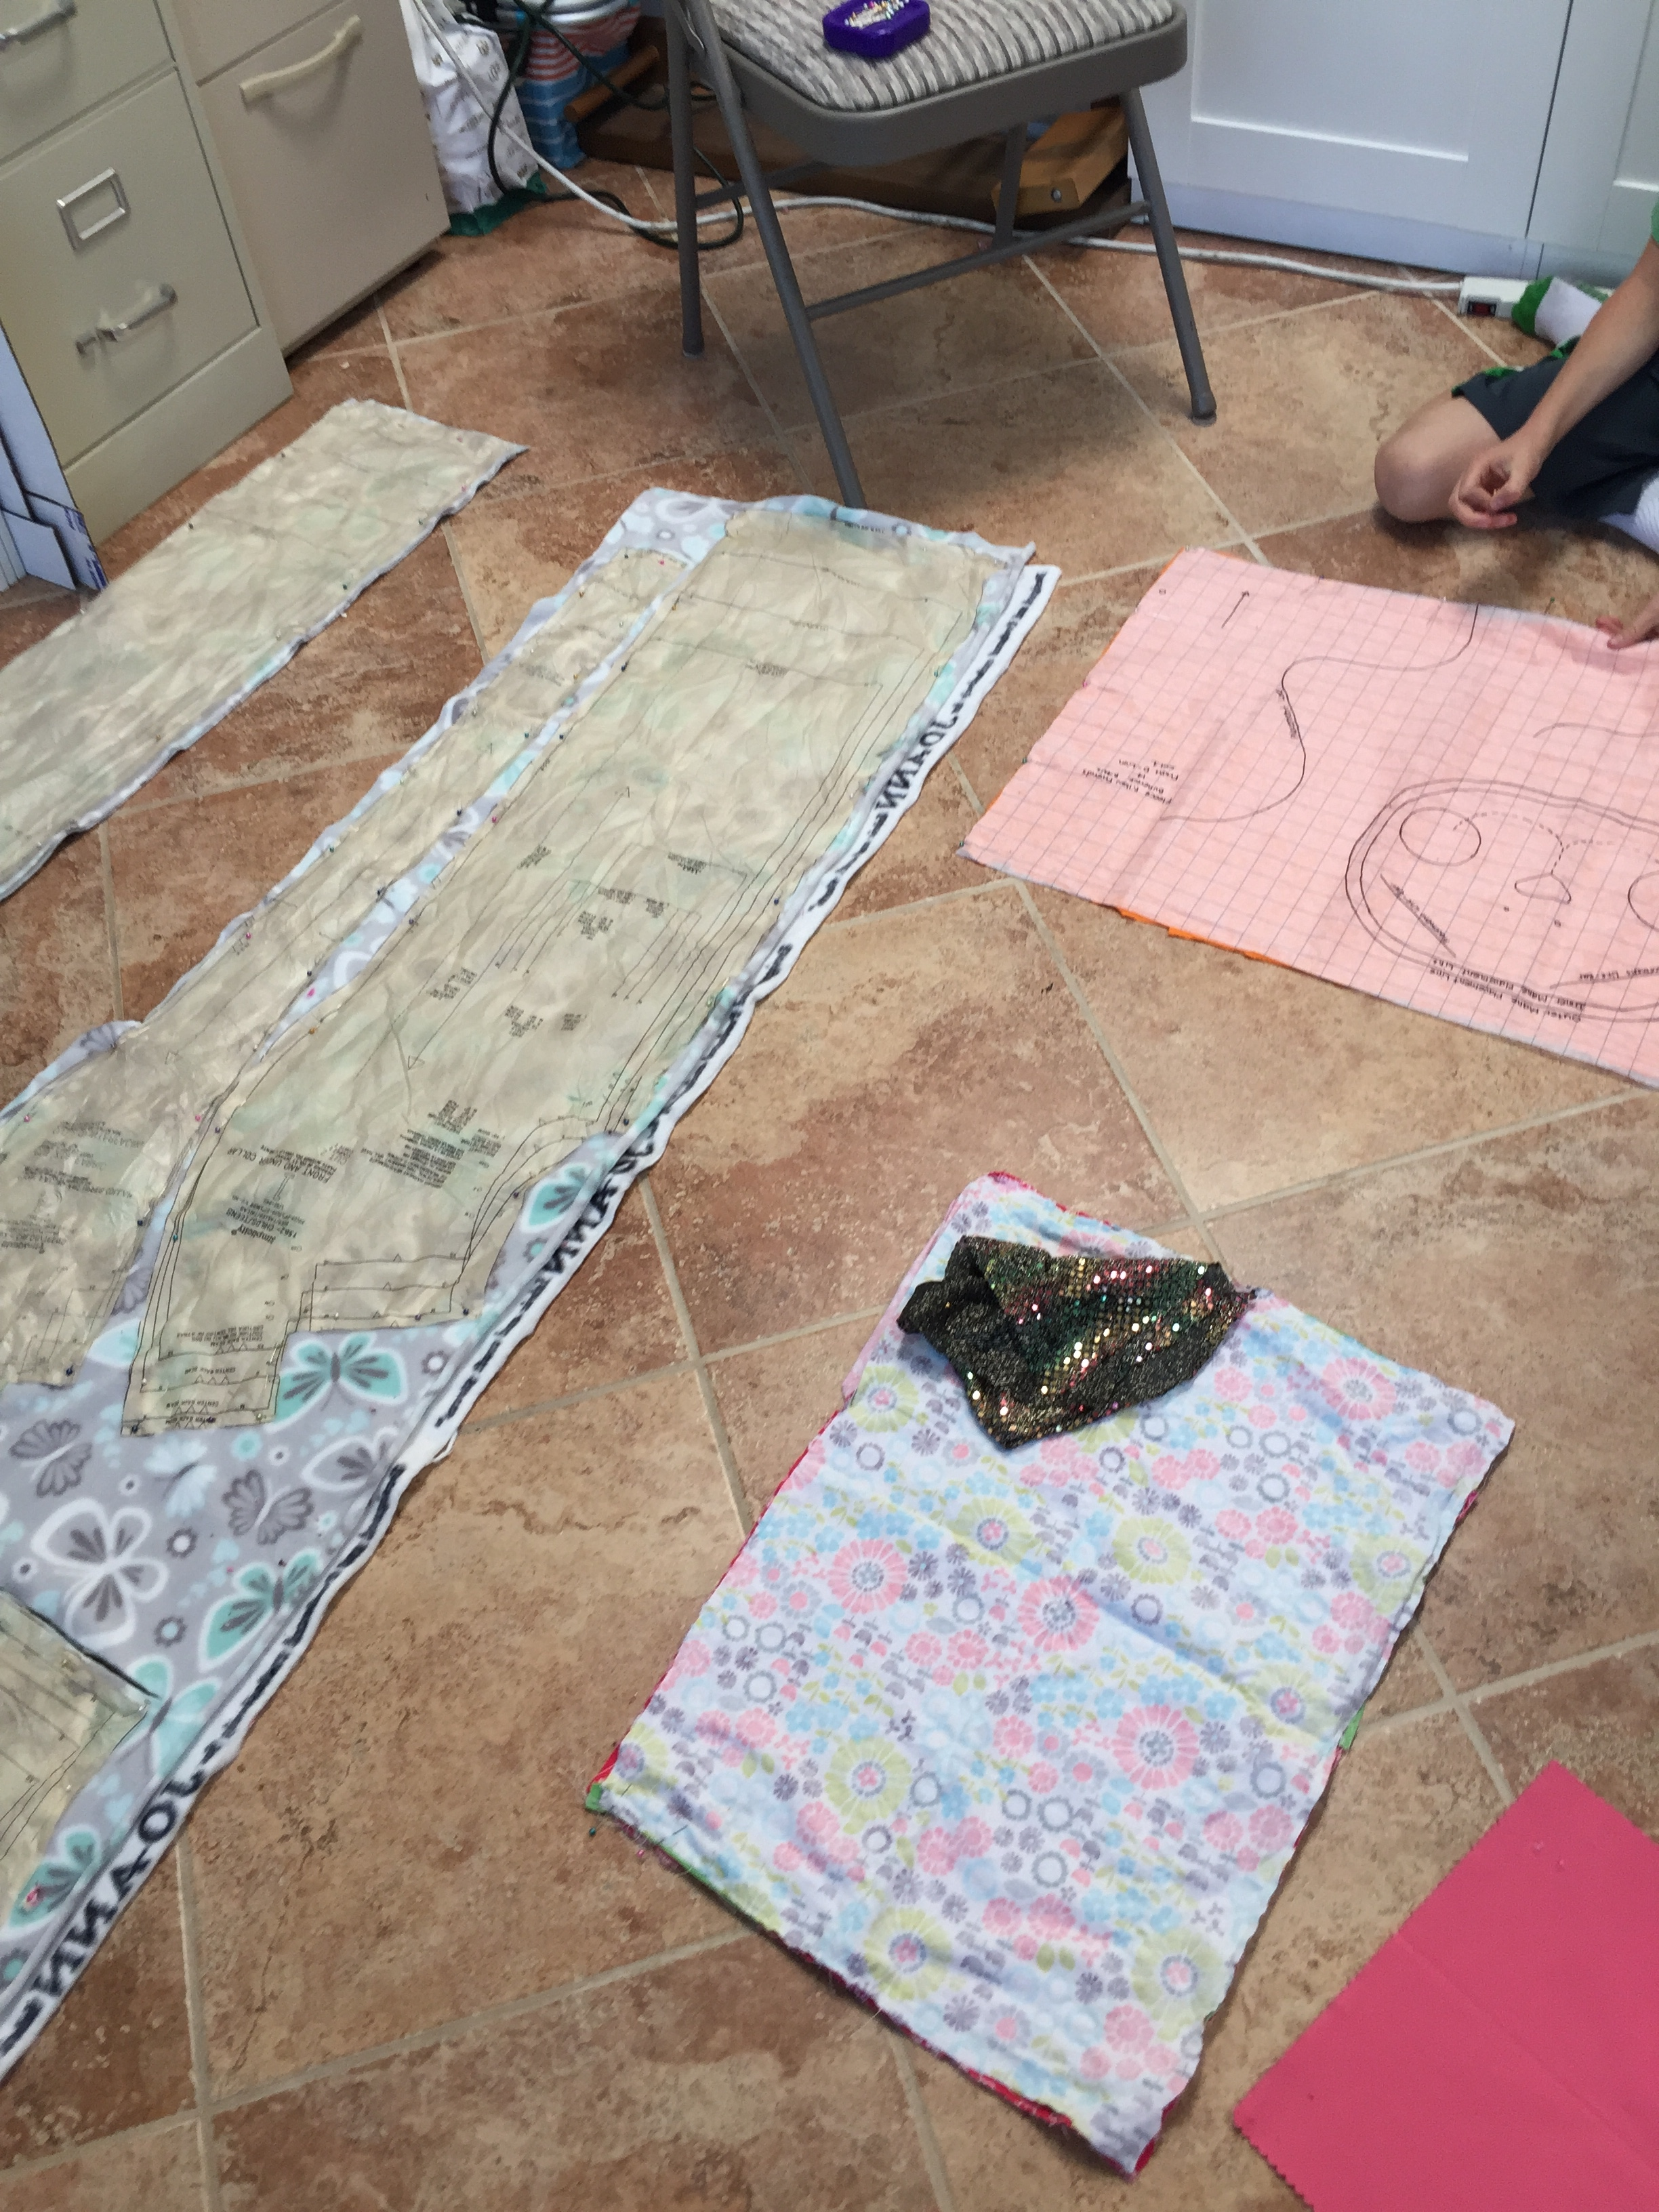 More pinning and cutting of new sewing projects.